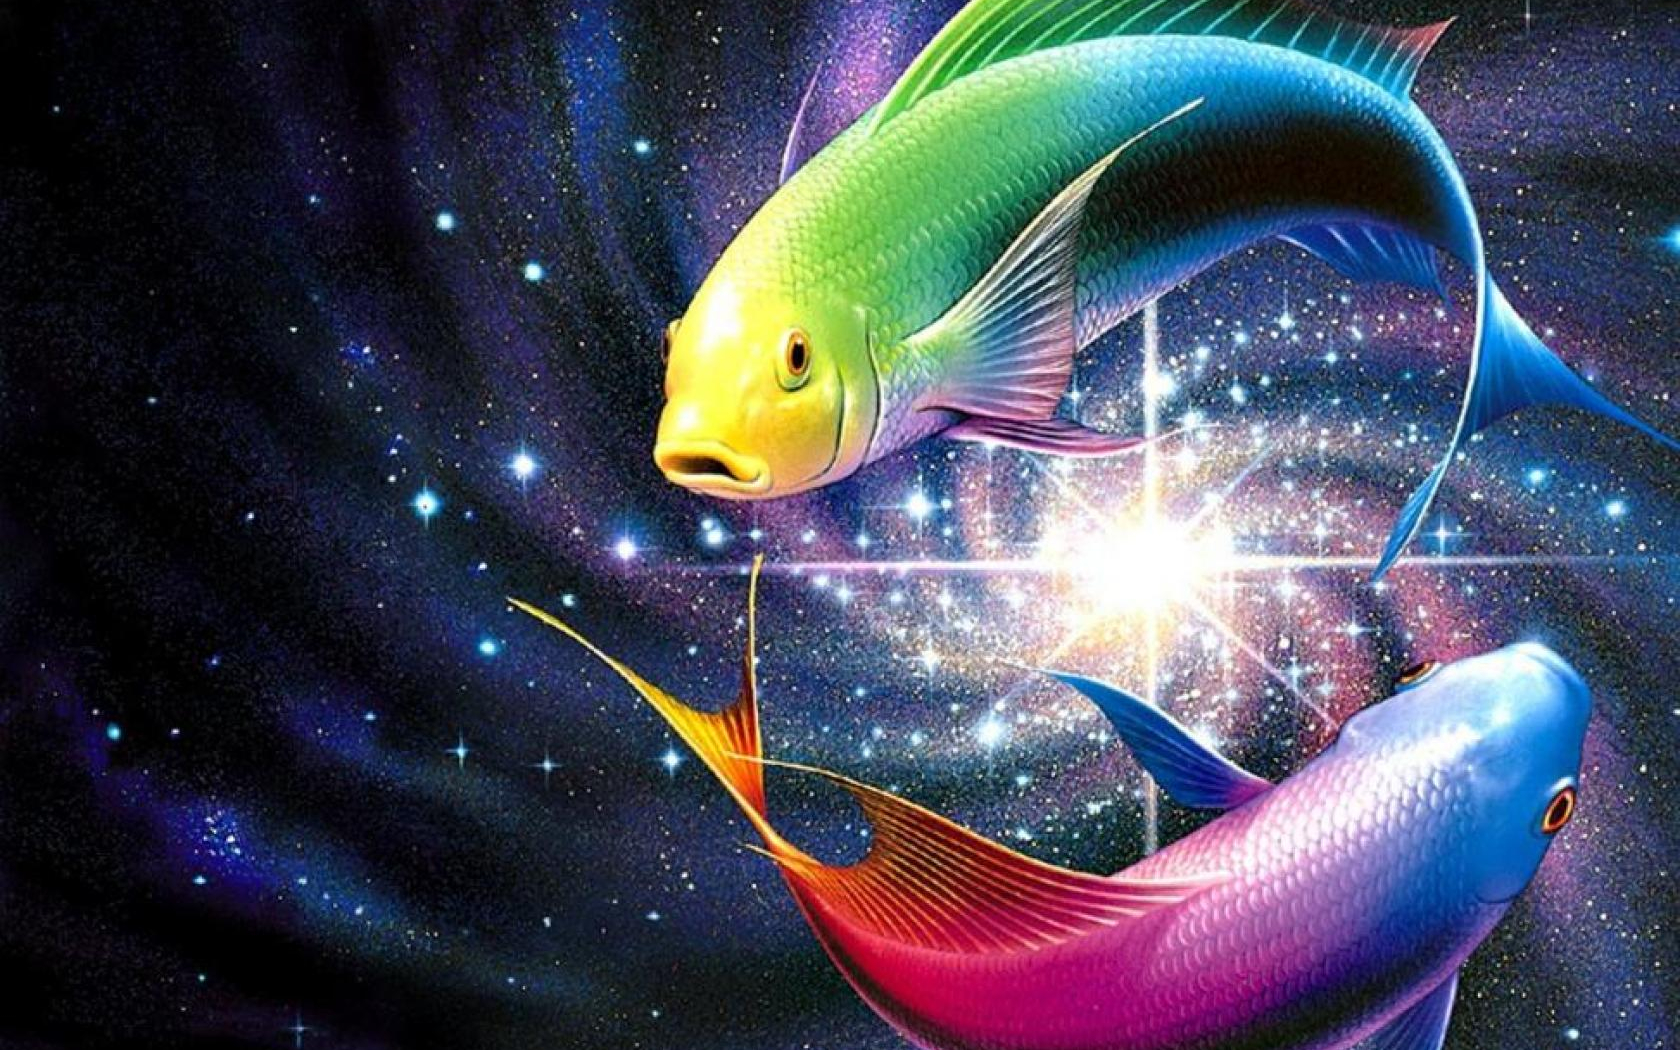 Free Download Rainbow Fish Wallpapers Hd 10689 Wallpaper Cool Walldiskpapercom 1680x1260 For Your Desktop Mobile Tablet Explore 47 Cool Fishing Wallpaper Fly Fishing Wallpaper Fishing Wallpaper Bass Fishing Desktop Wallpaper